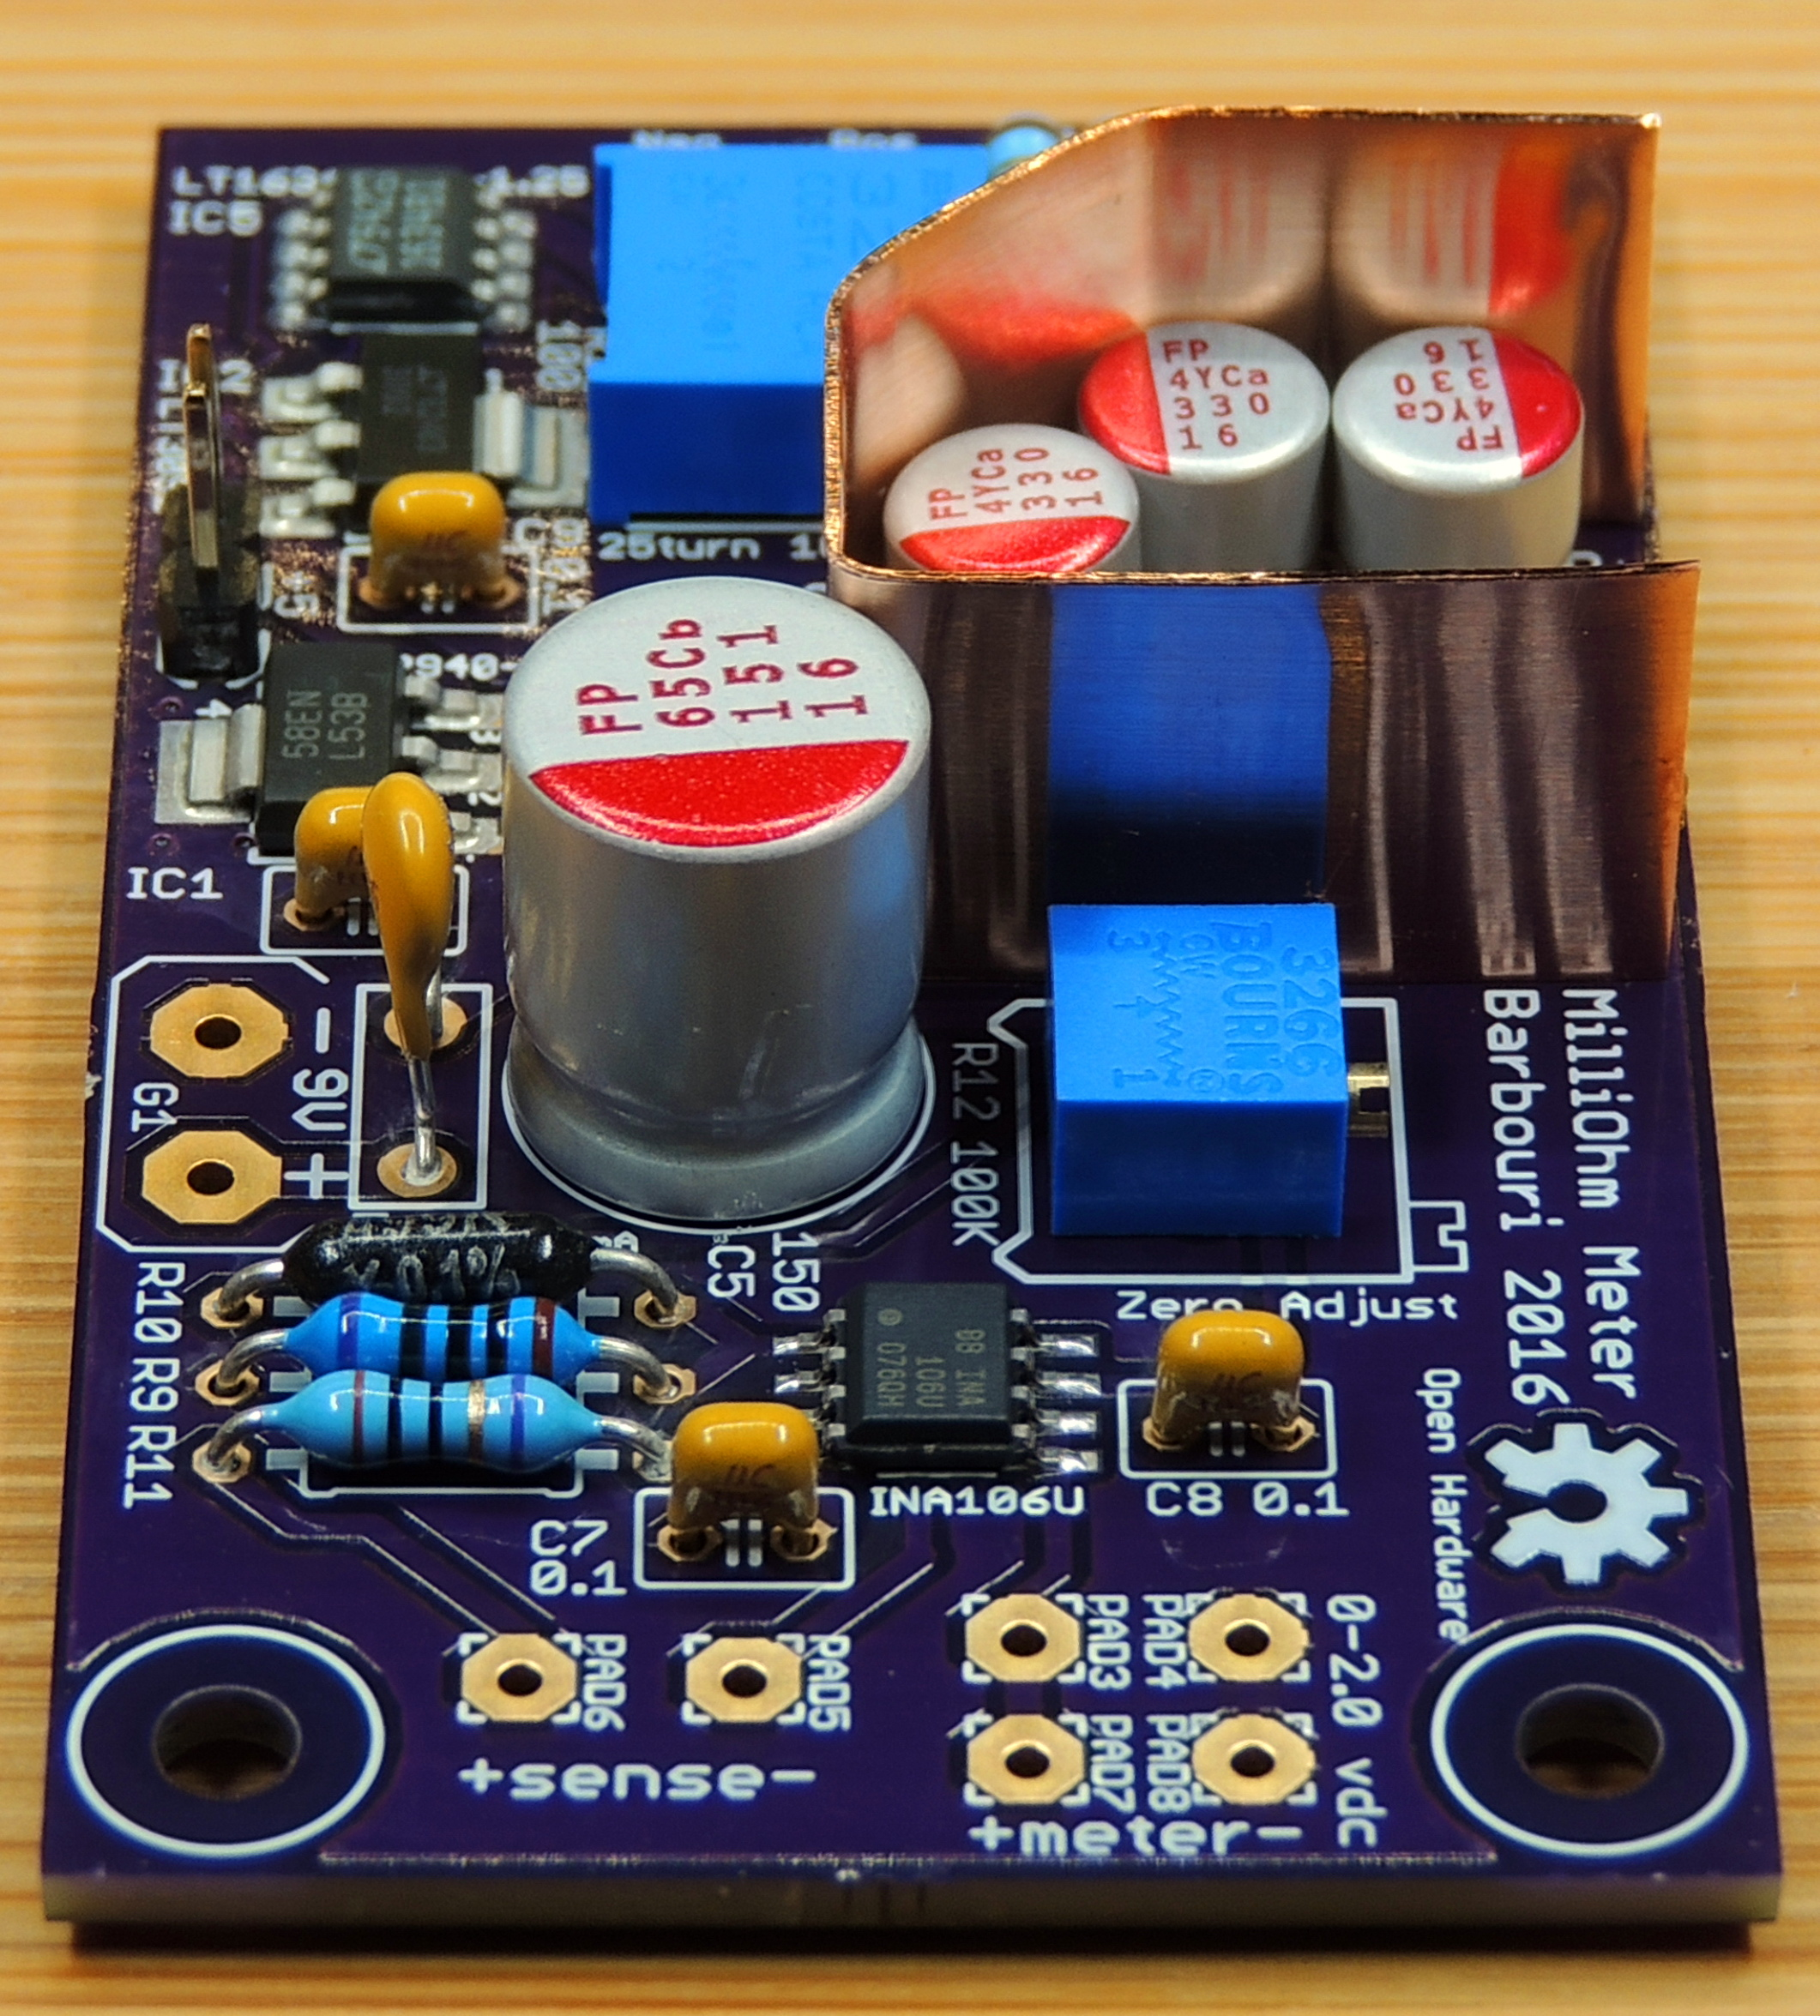 Milliohm Meter Version 1 5 - Barbouri's Electronics Projects